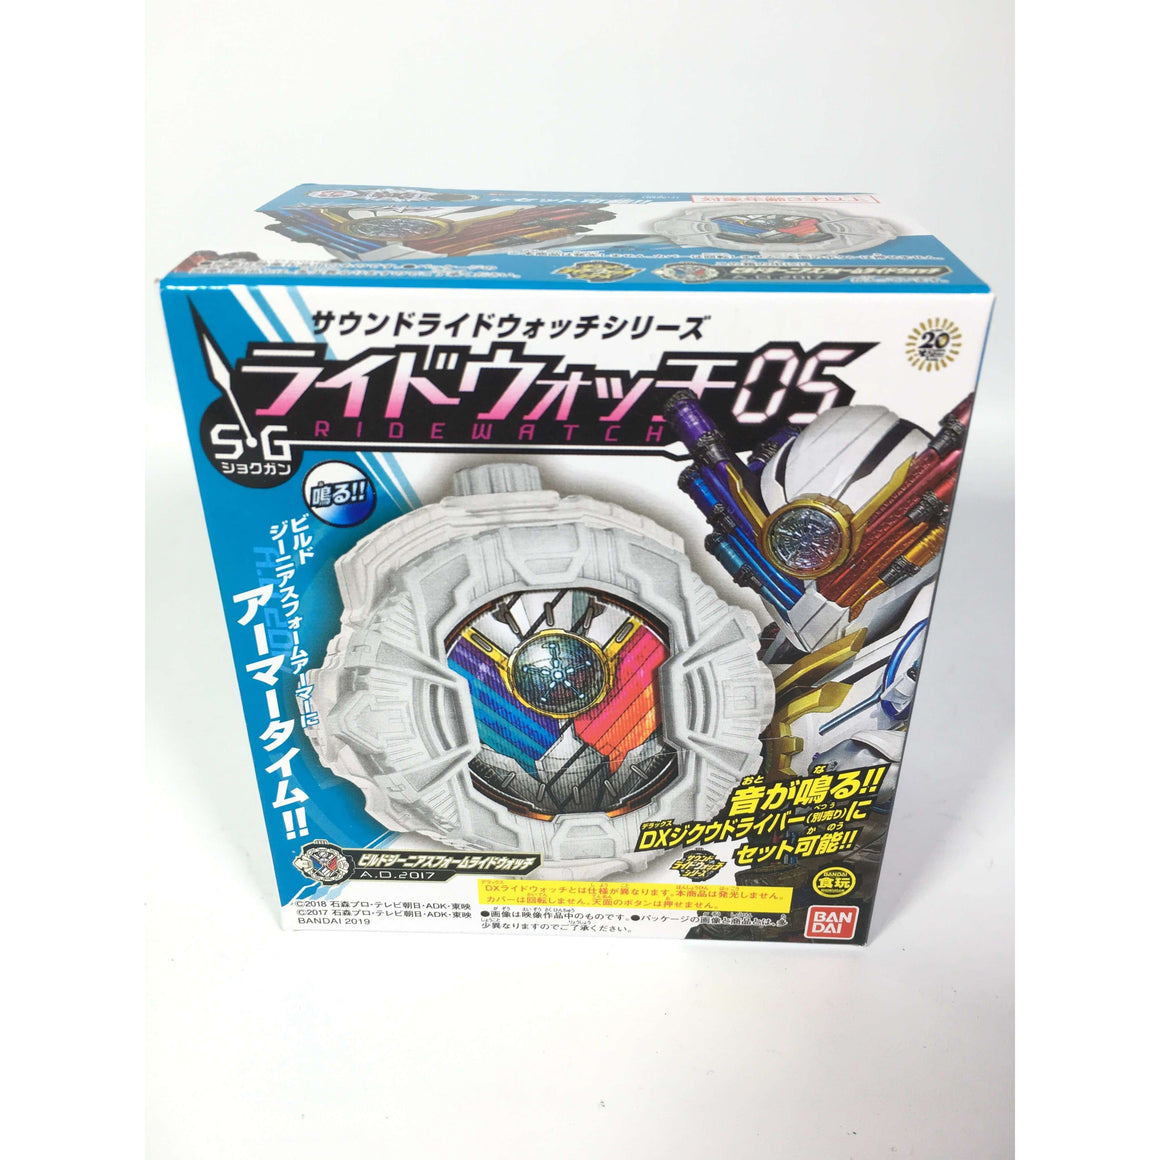 CSTOYS INTERNATIONAL:Candy Toy Kamen Rider Zi-O: SG Sound Ride Watch 05 - 01. Build Genius Form Ride Watch